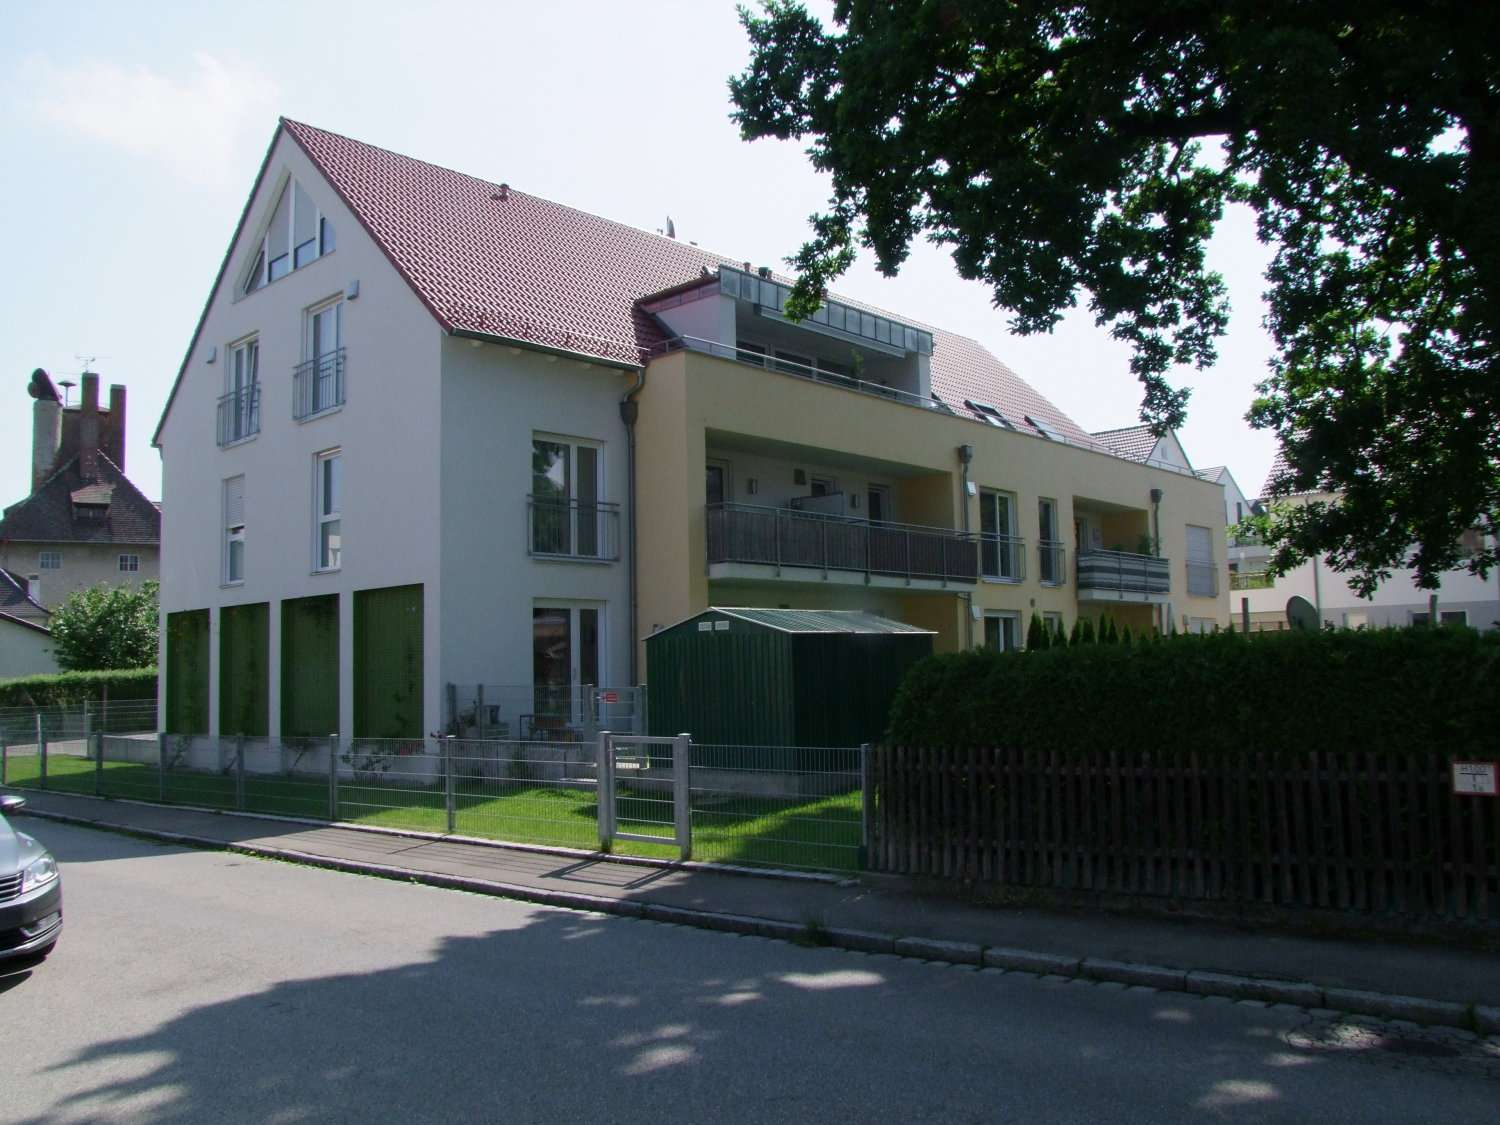 Penthouse Wohnung in 8 Familien Haus